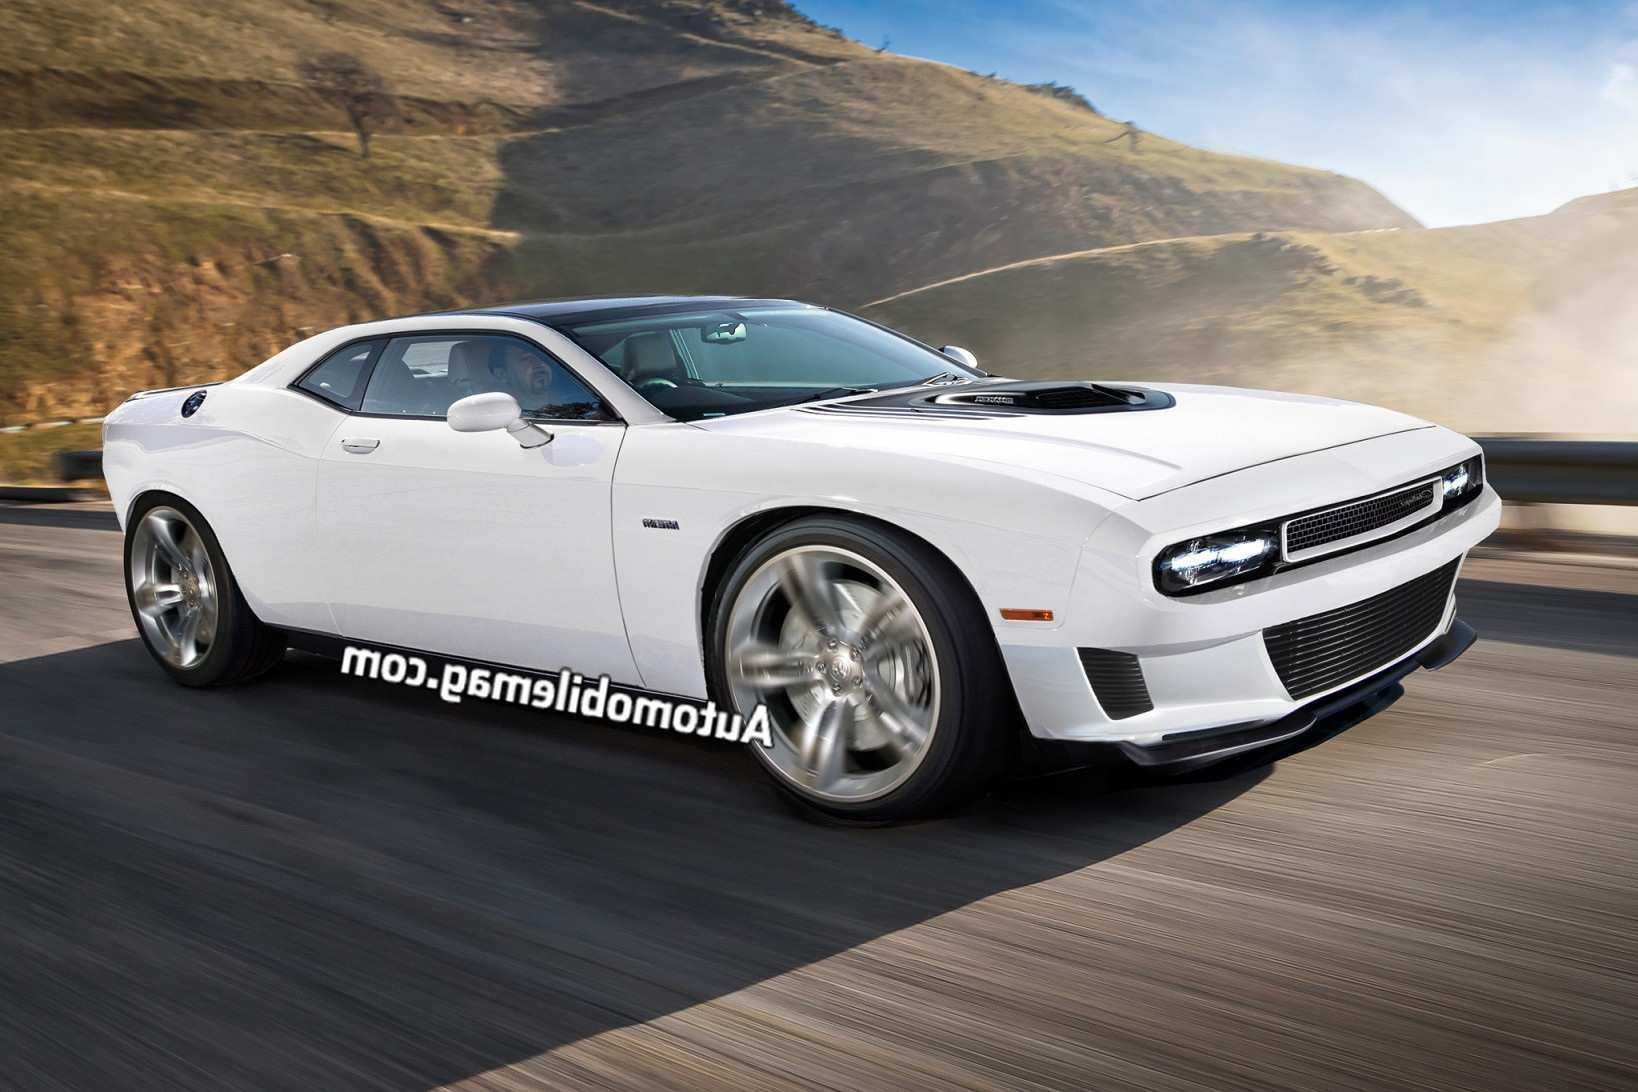 87 Concept of Dodge Challenger 2020 Engine by Dodge Challenger 2020